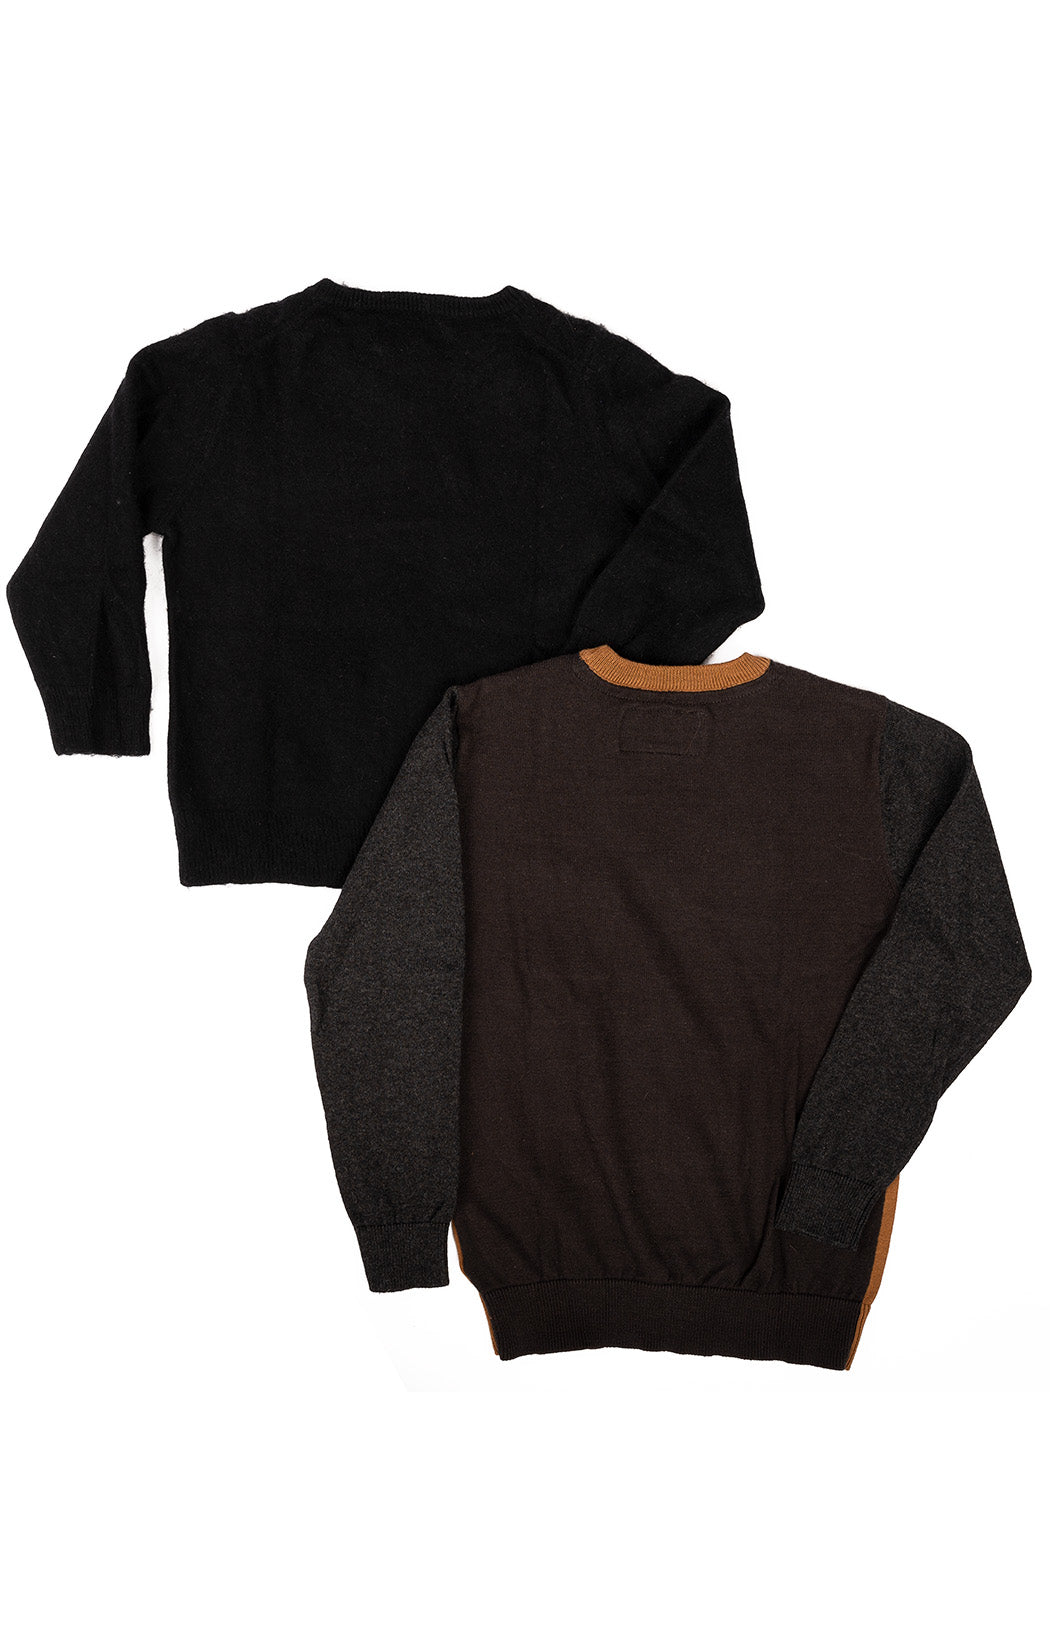 Sweaters Size: 4T